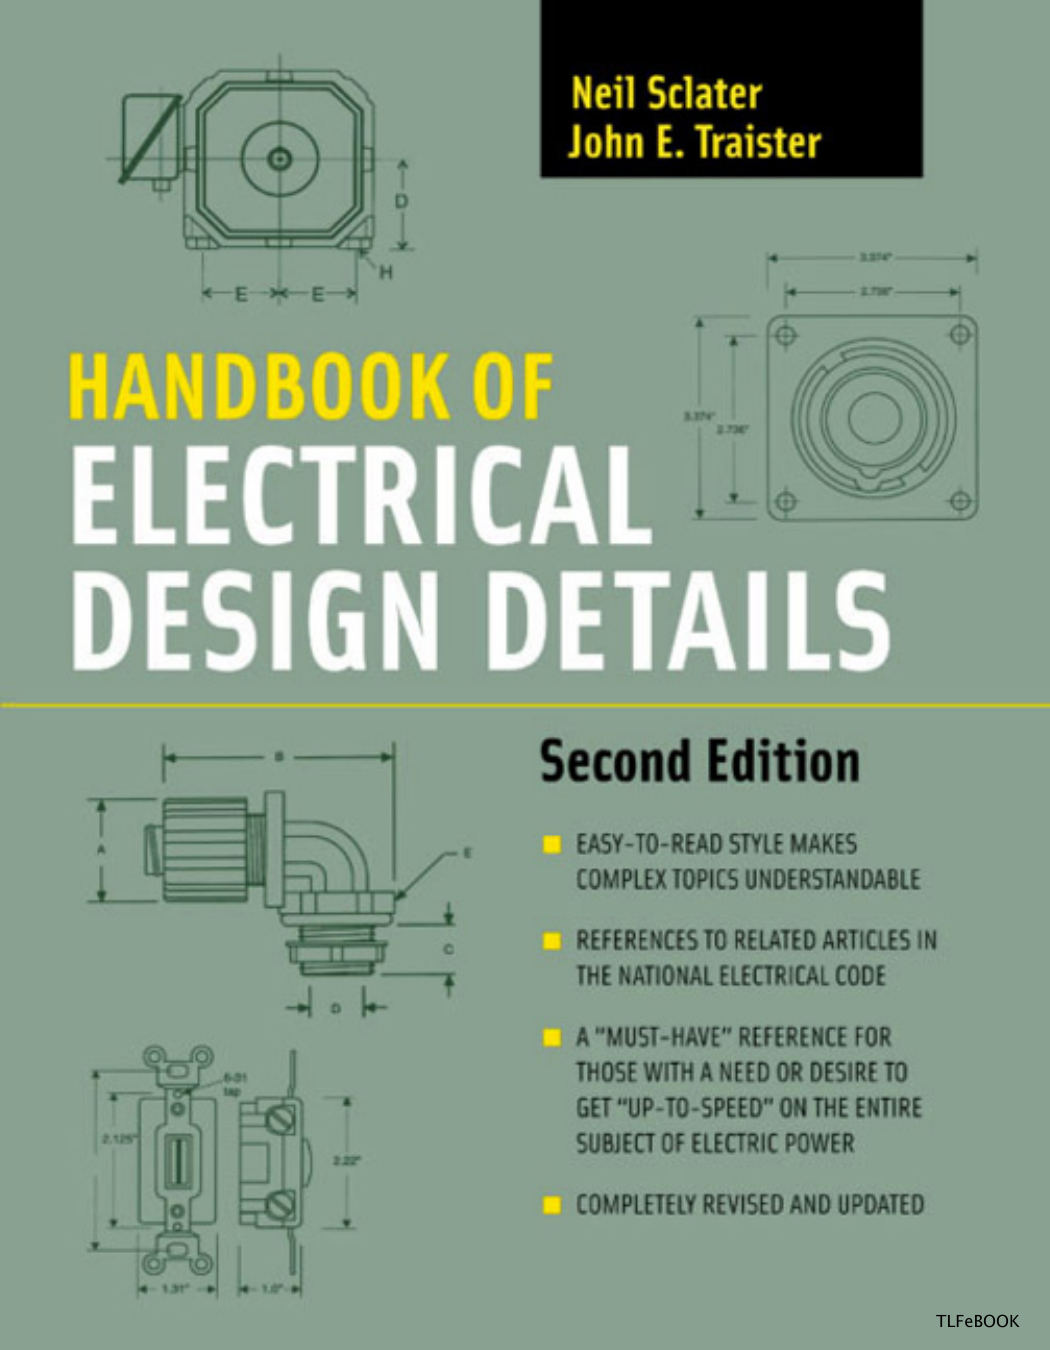 Electrical Design Details Handbook (McGraw Hill) 2ed on